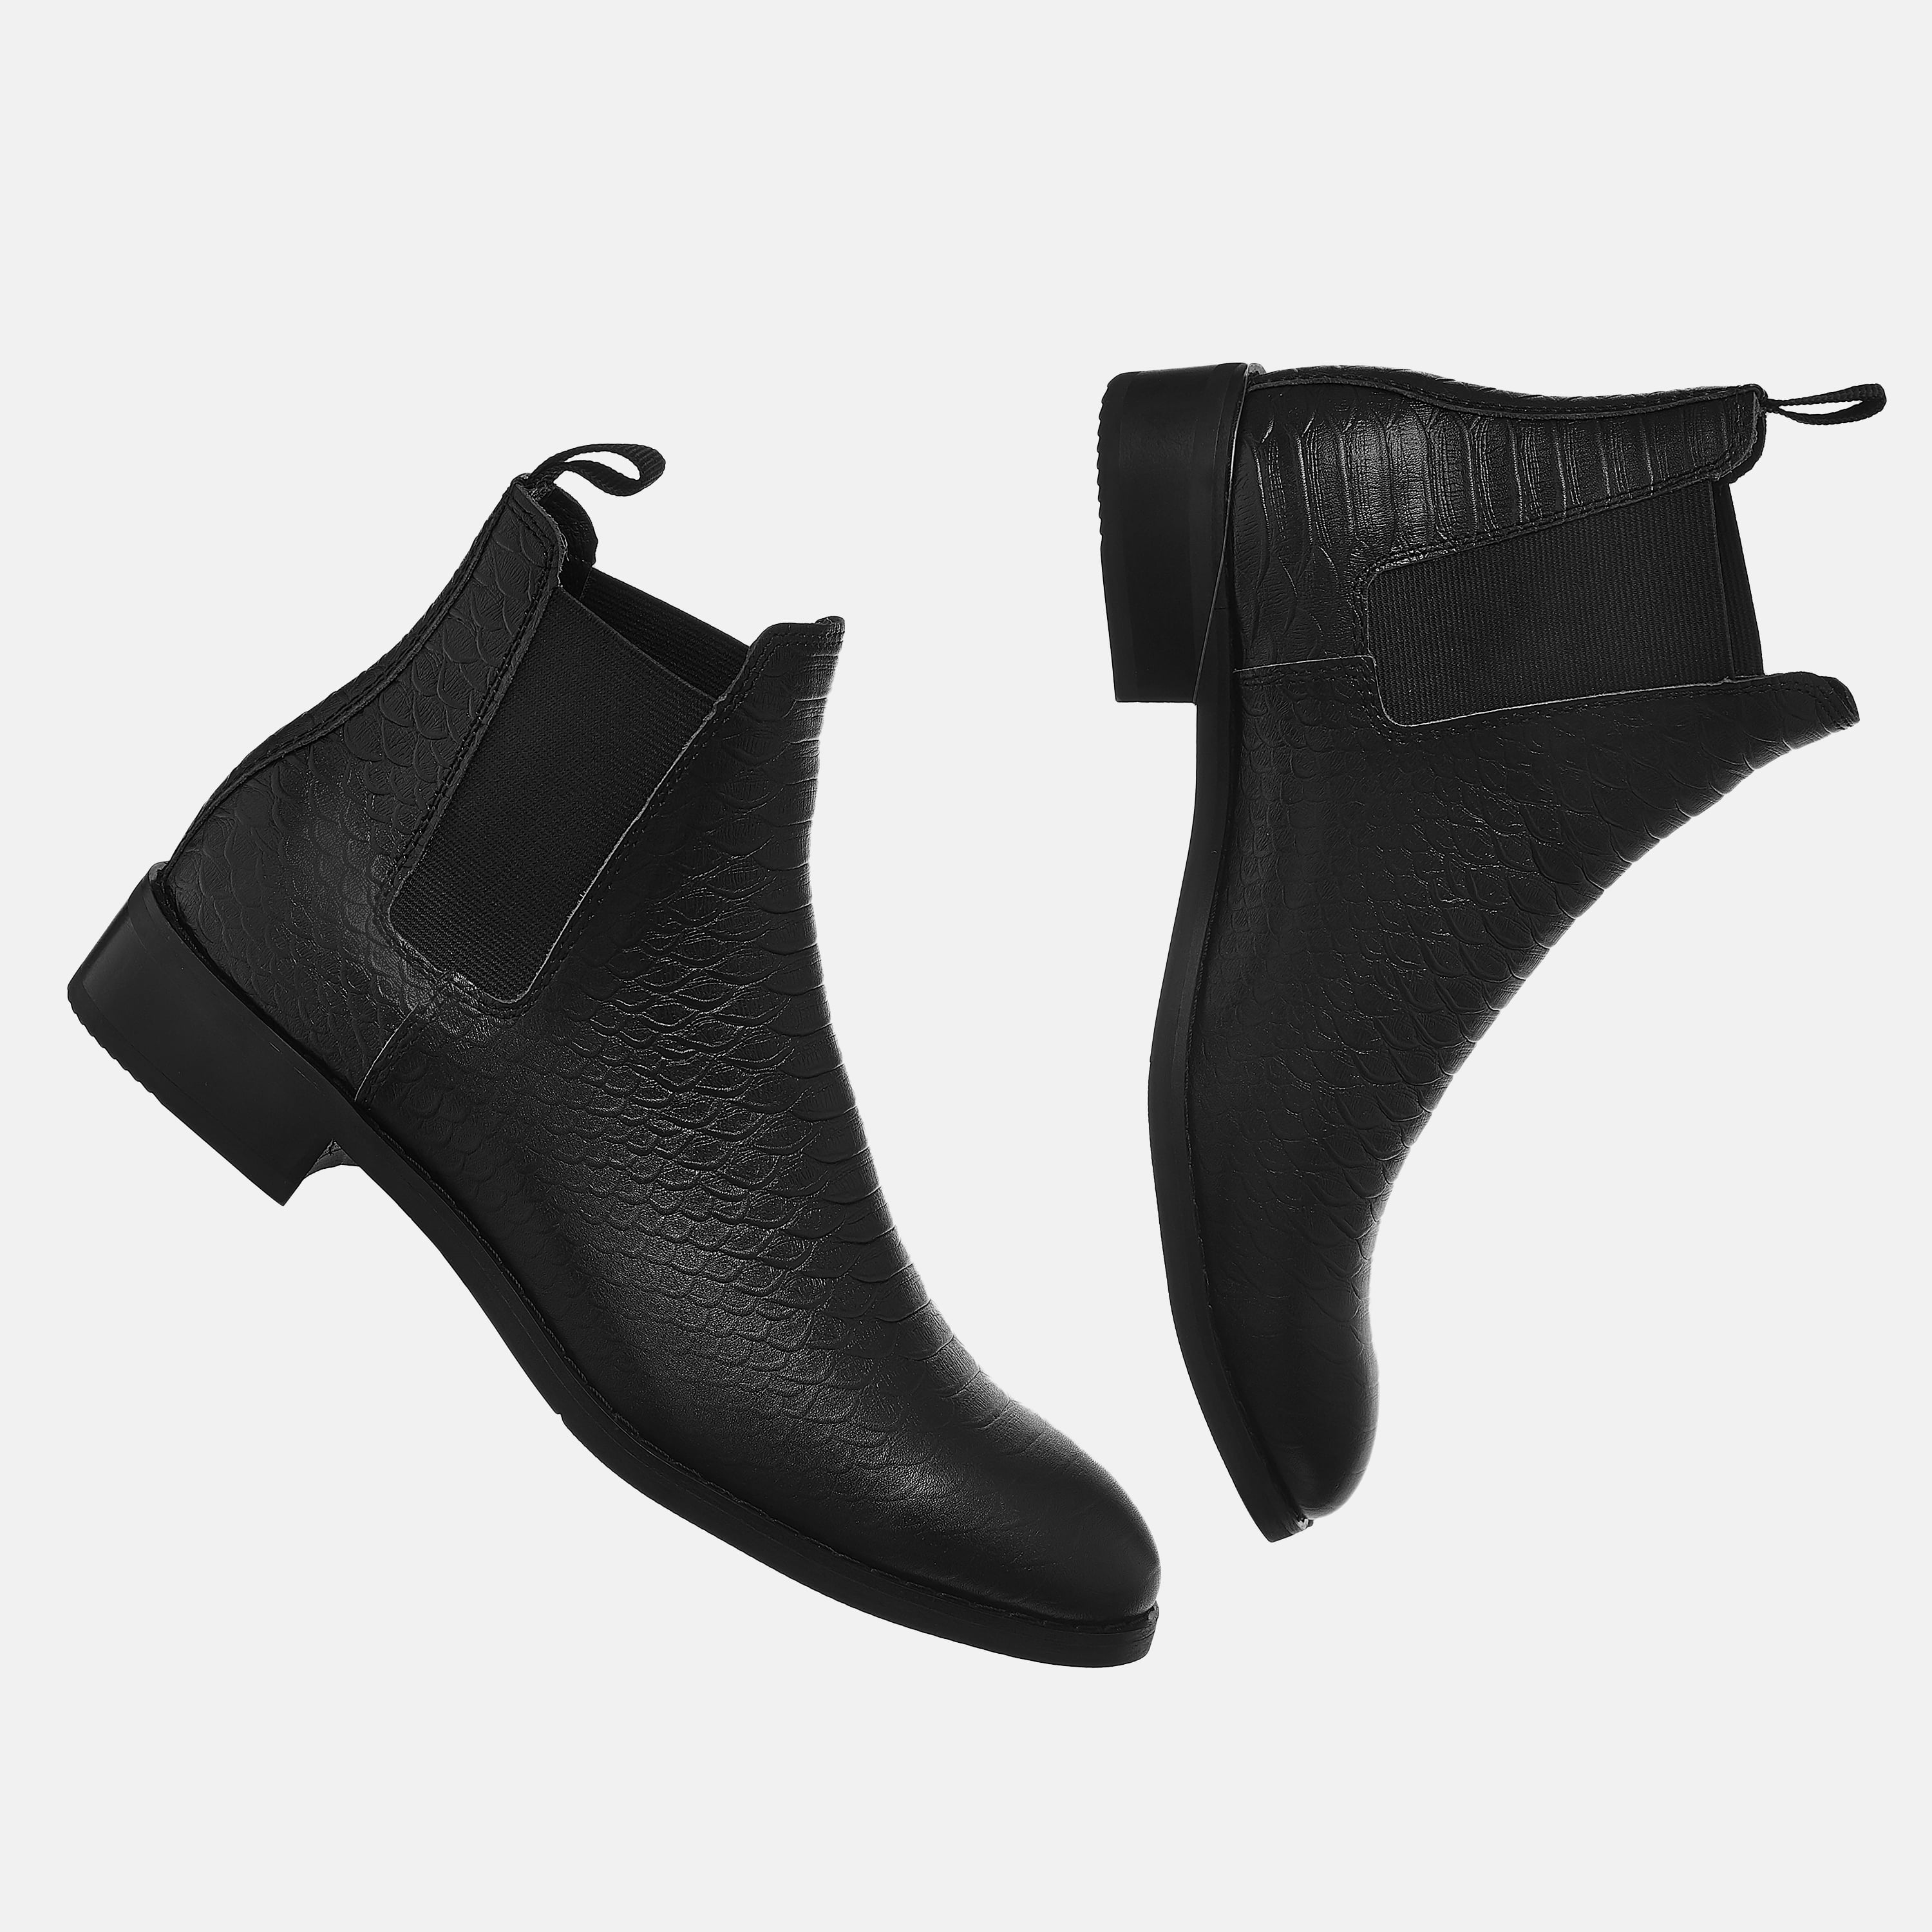 The Wild Chelsea Boots In Black The Wild Chelsea Boots In Black 3 1